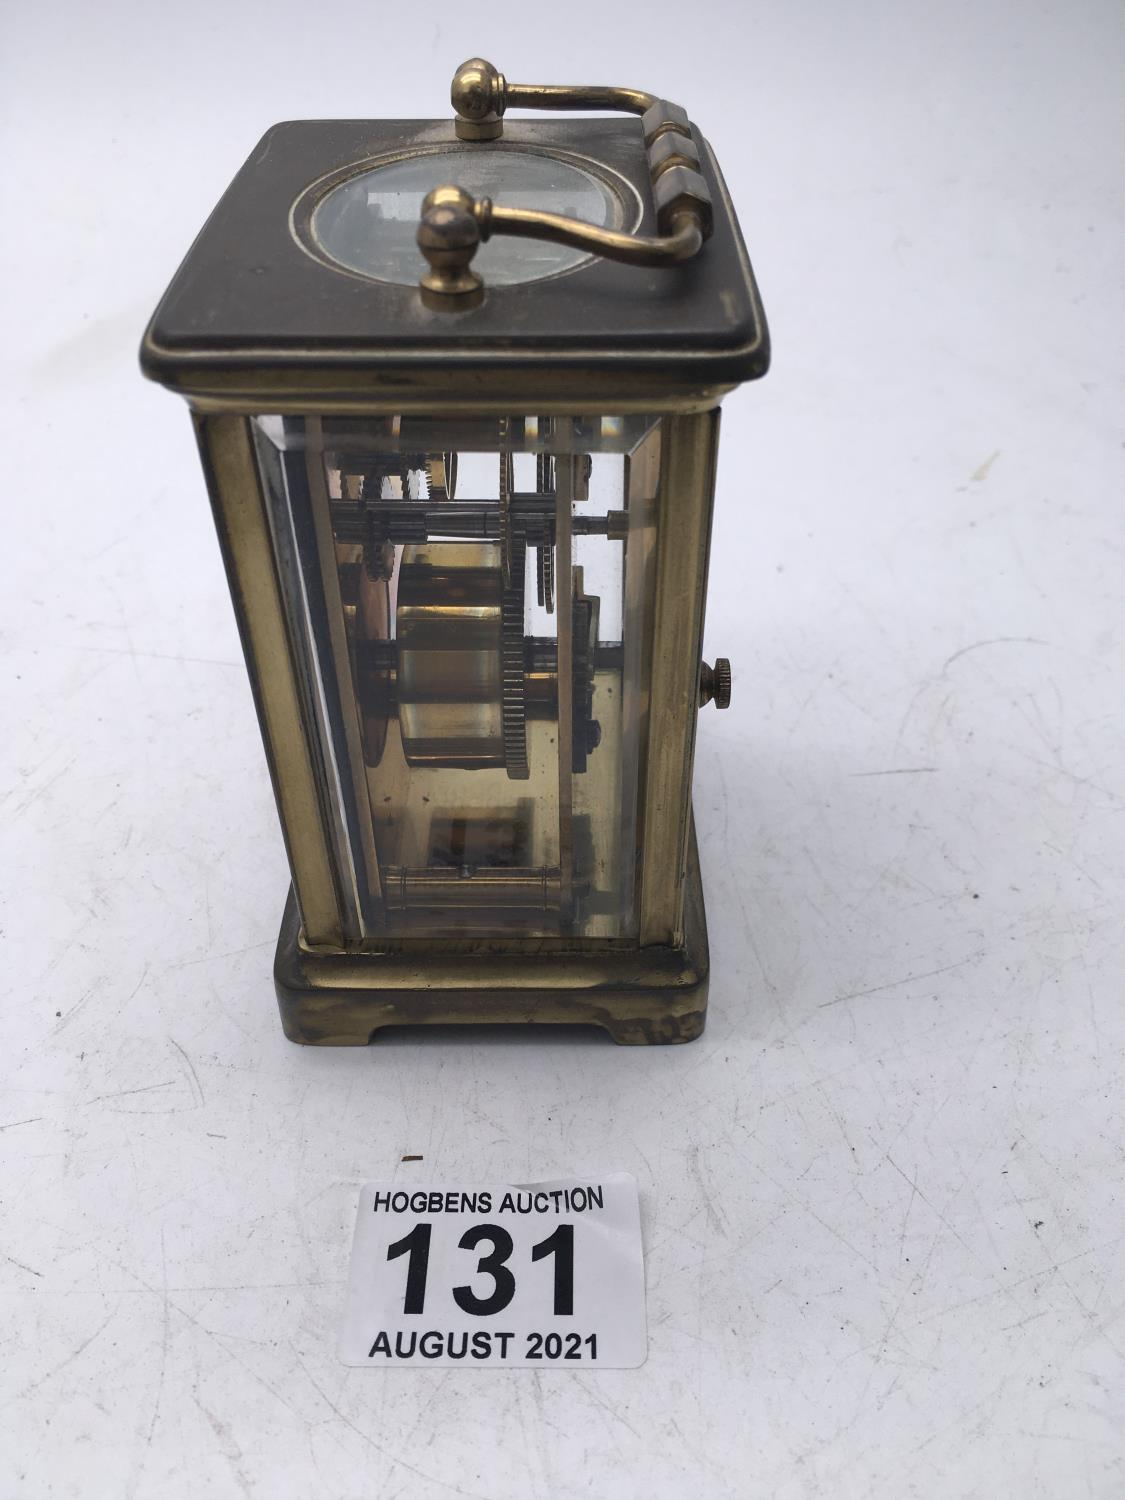 Maple & Co a brass bound carriage clock with enamel dial, movement runs for 1 minute approx - Image 2 of 3